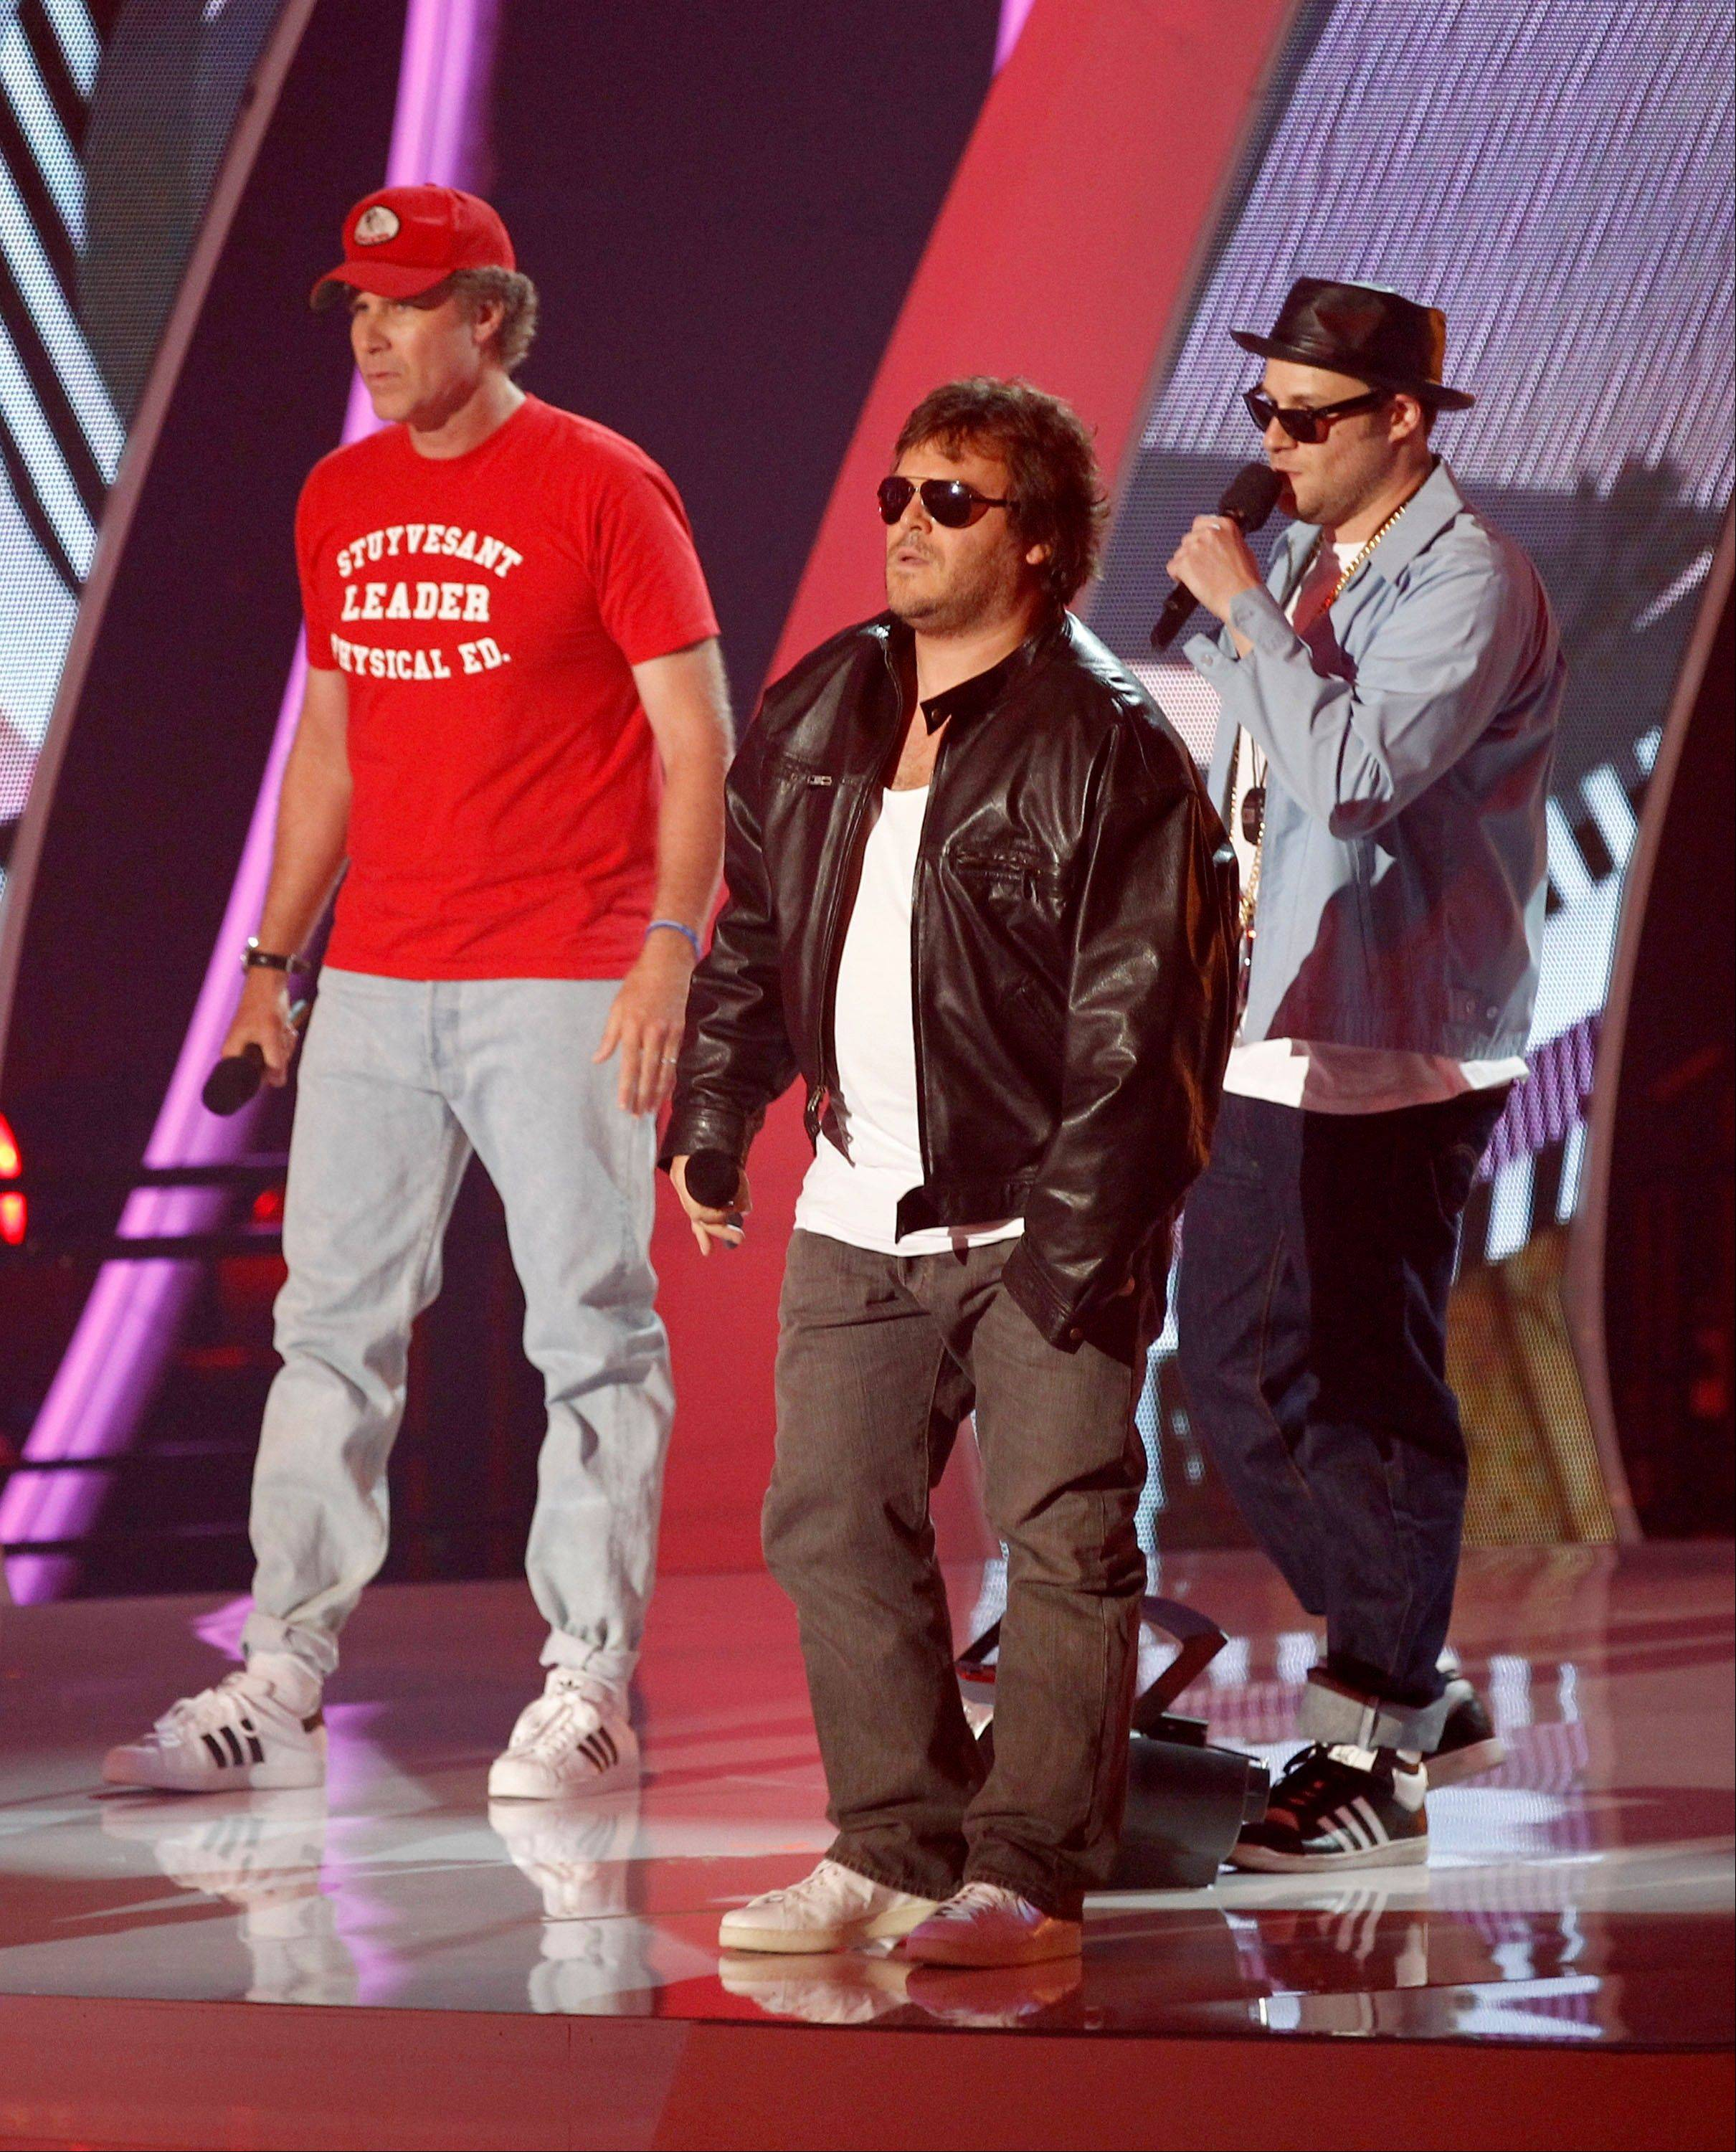 From left, Will Ferrell, Jack Black and Seth Rogan are seen on stage at the MTV Video Music Awards on Sunday in Los Angeles.